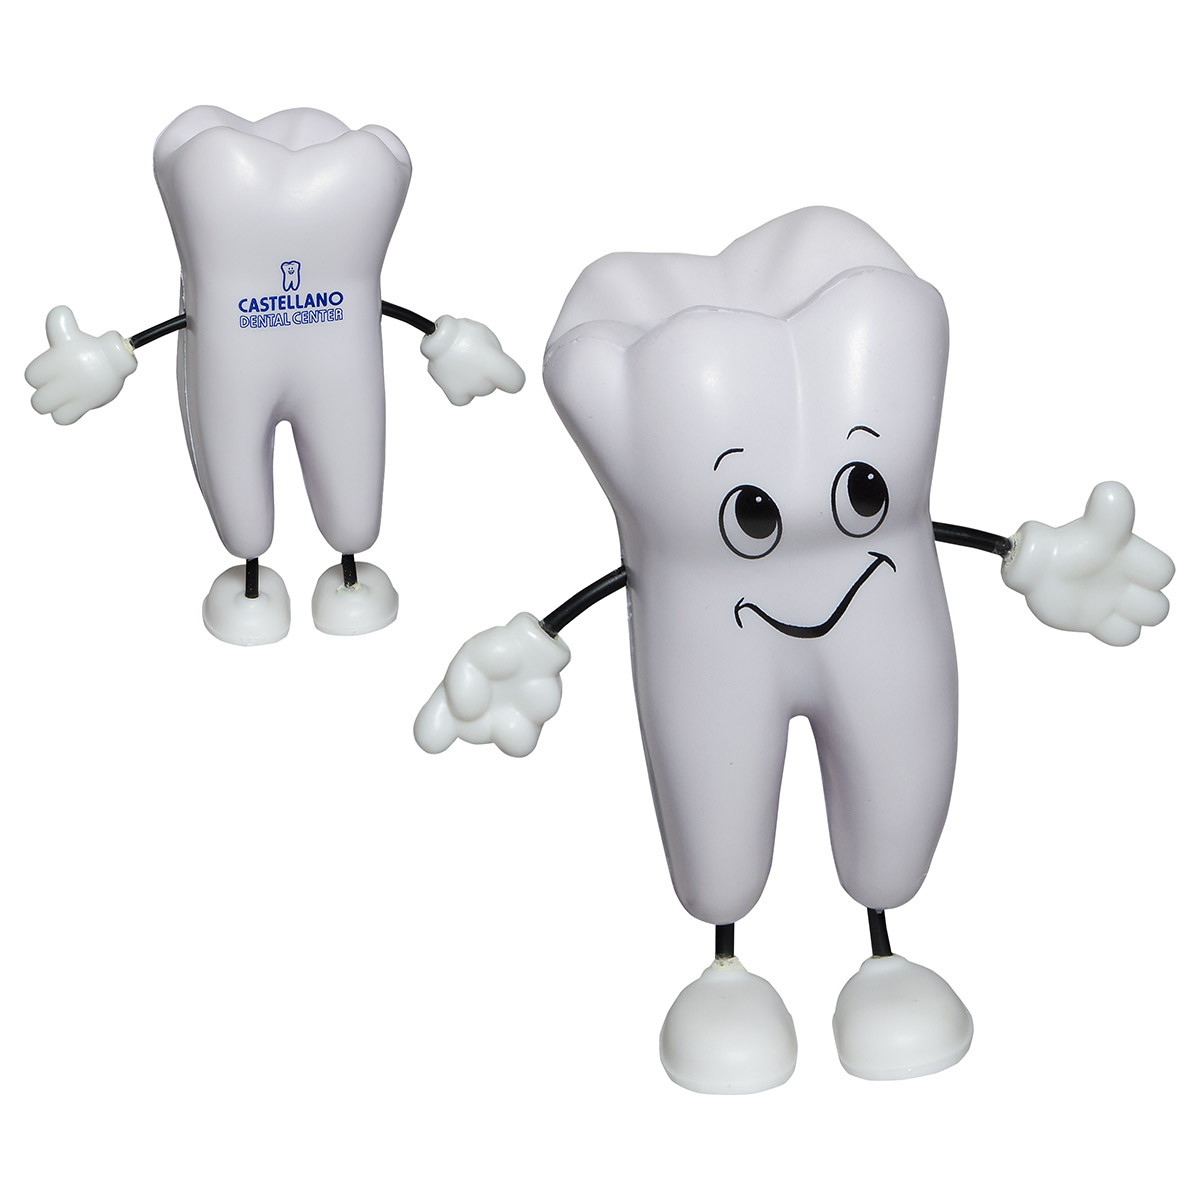 Tooth Figure Stress Reliever, LCH-TT17 - 1 Colour Imprint